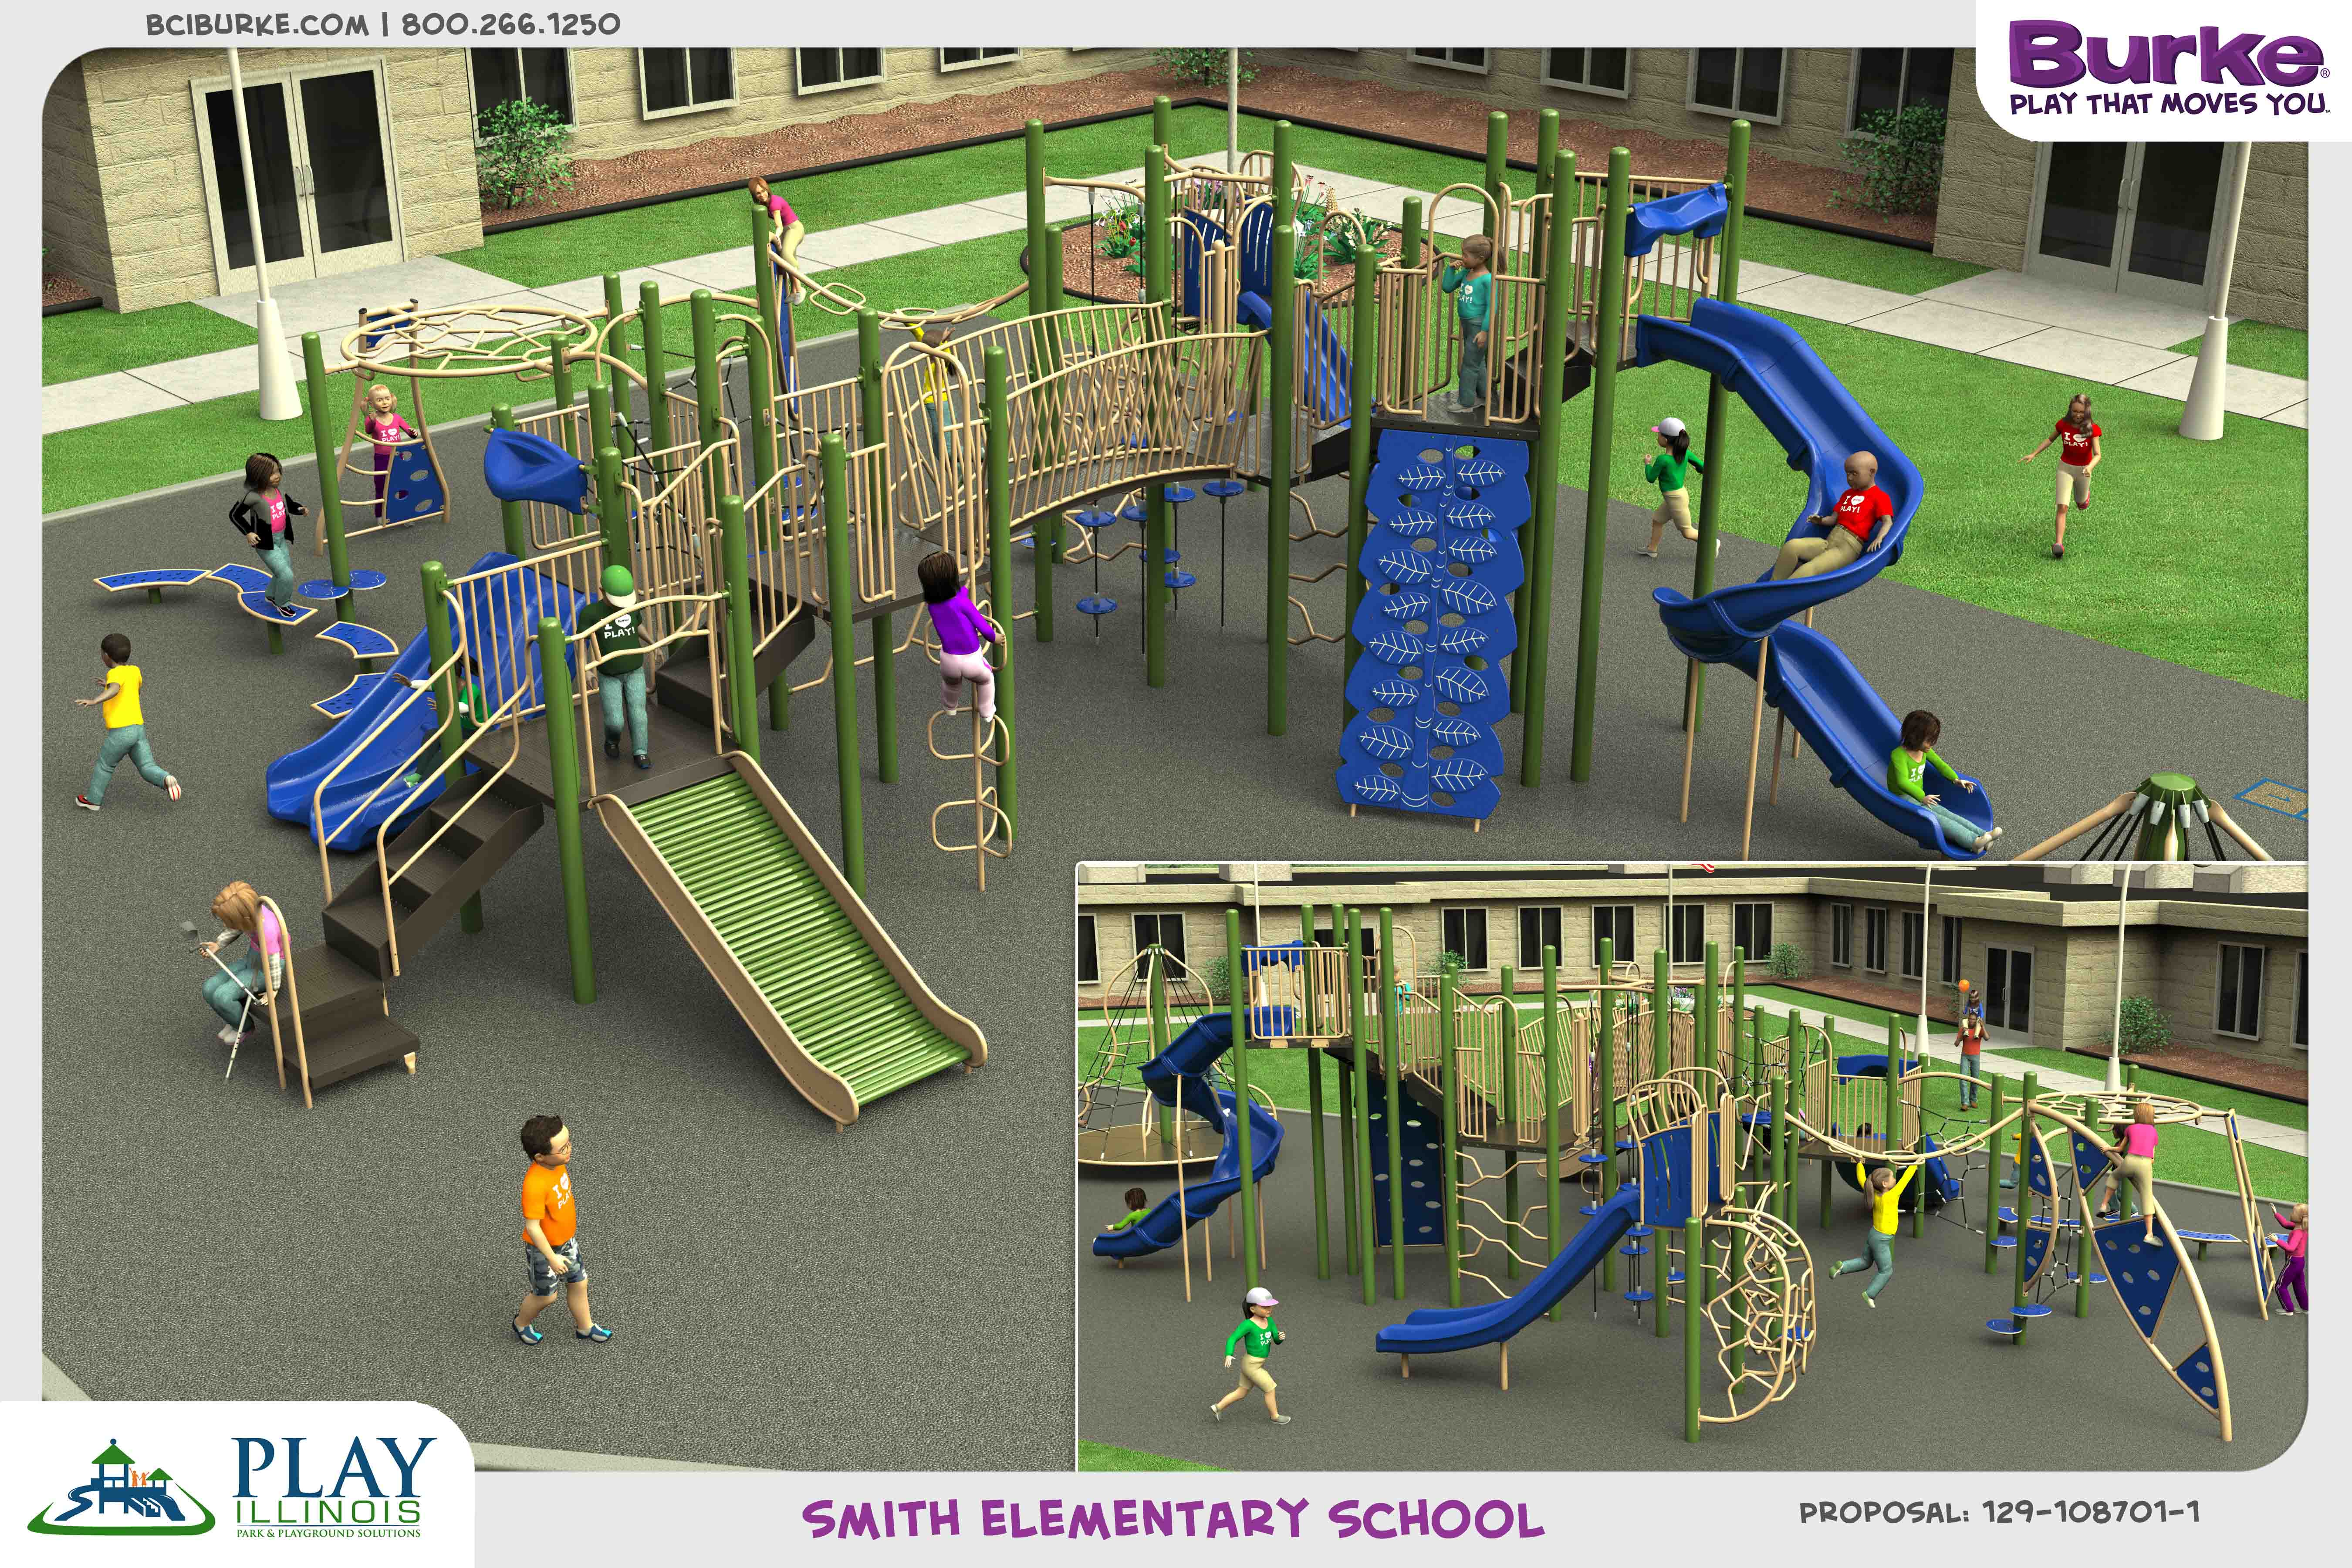 SmithElementary-1 dream build play experience accessible playgrounds